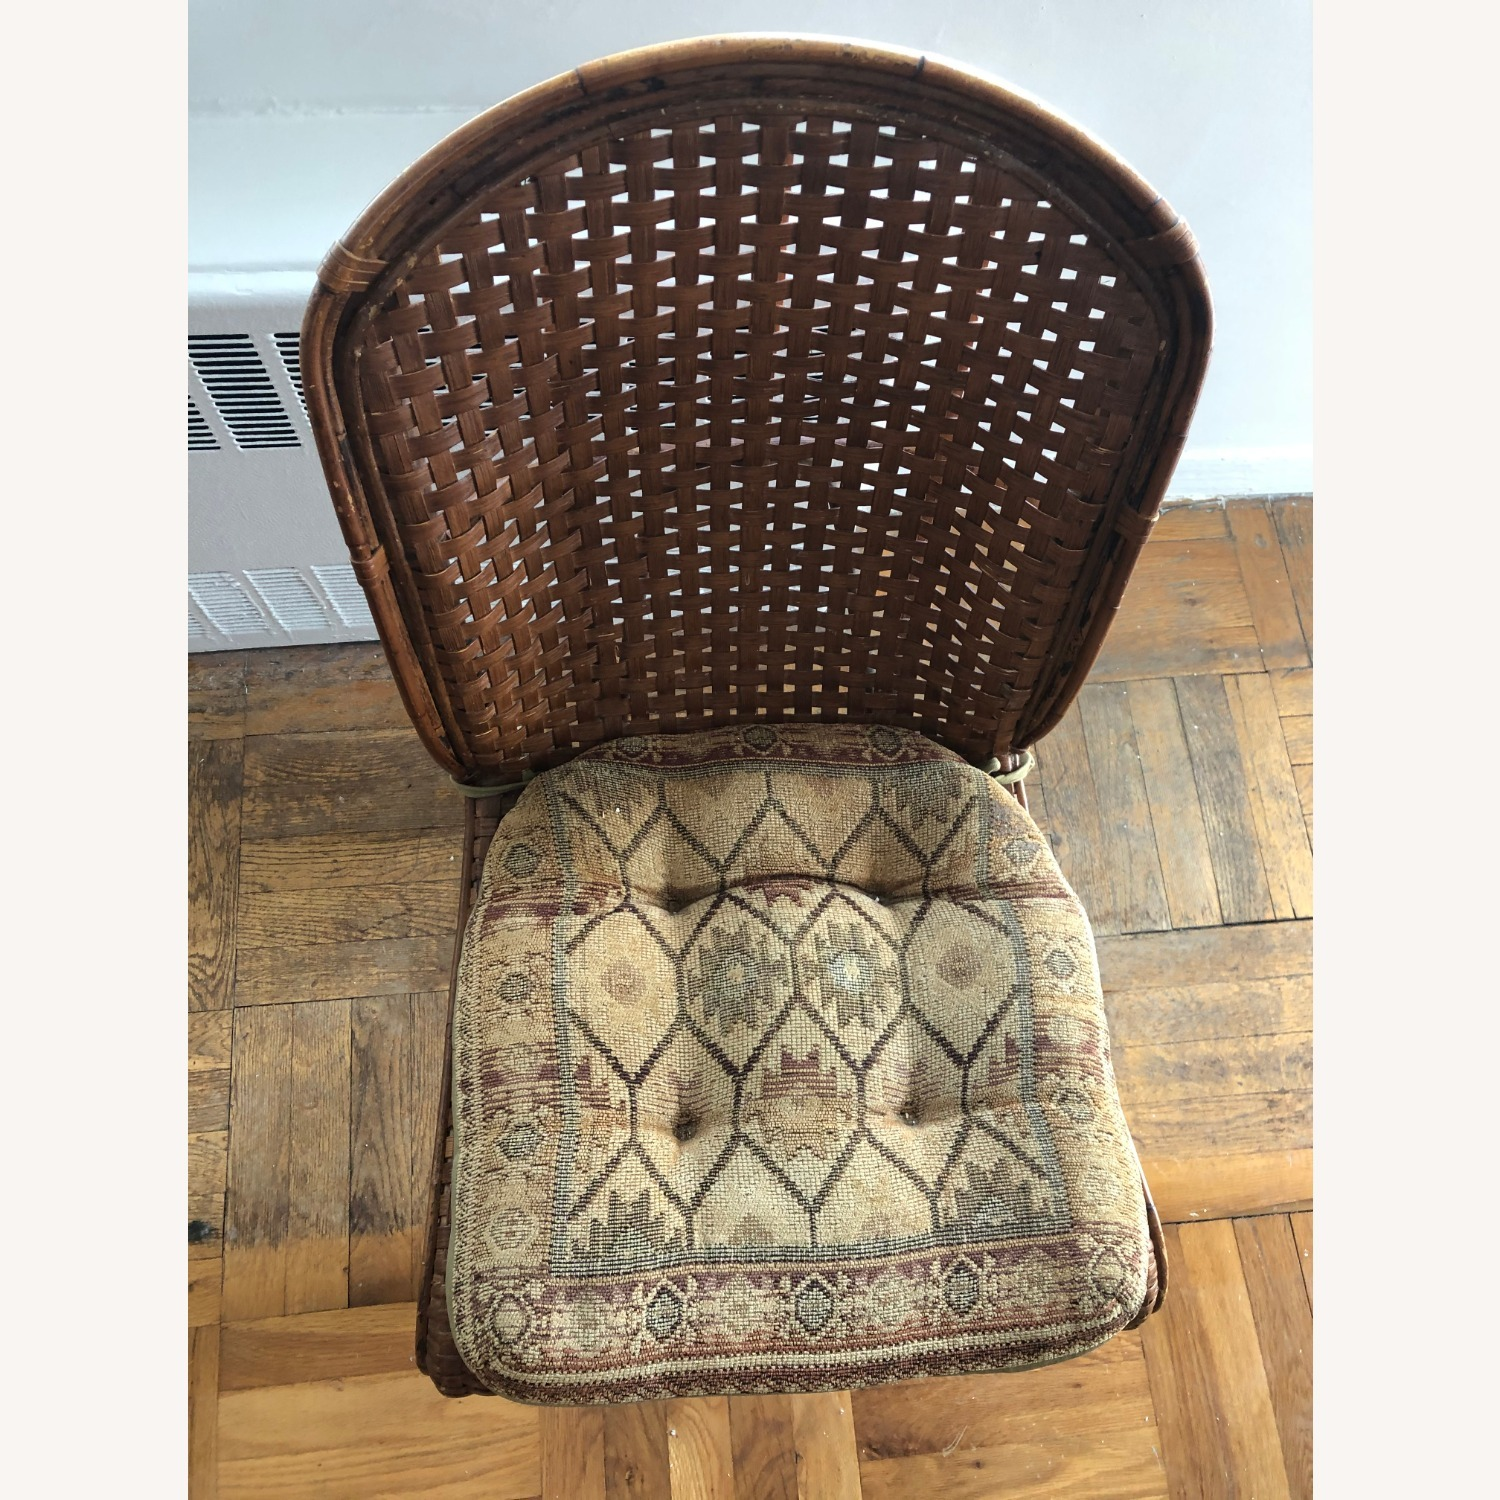 Wicker Dining Room Chairs (Set of 4) with coushins - image-2